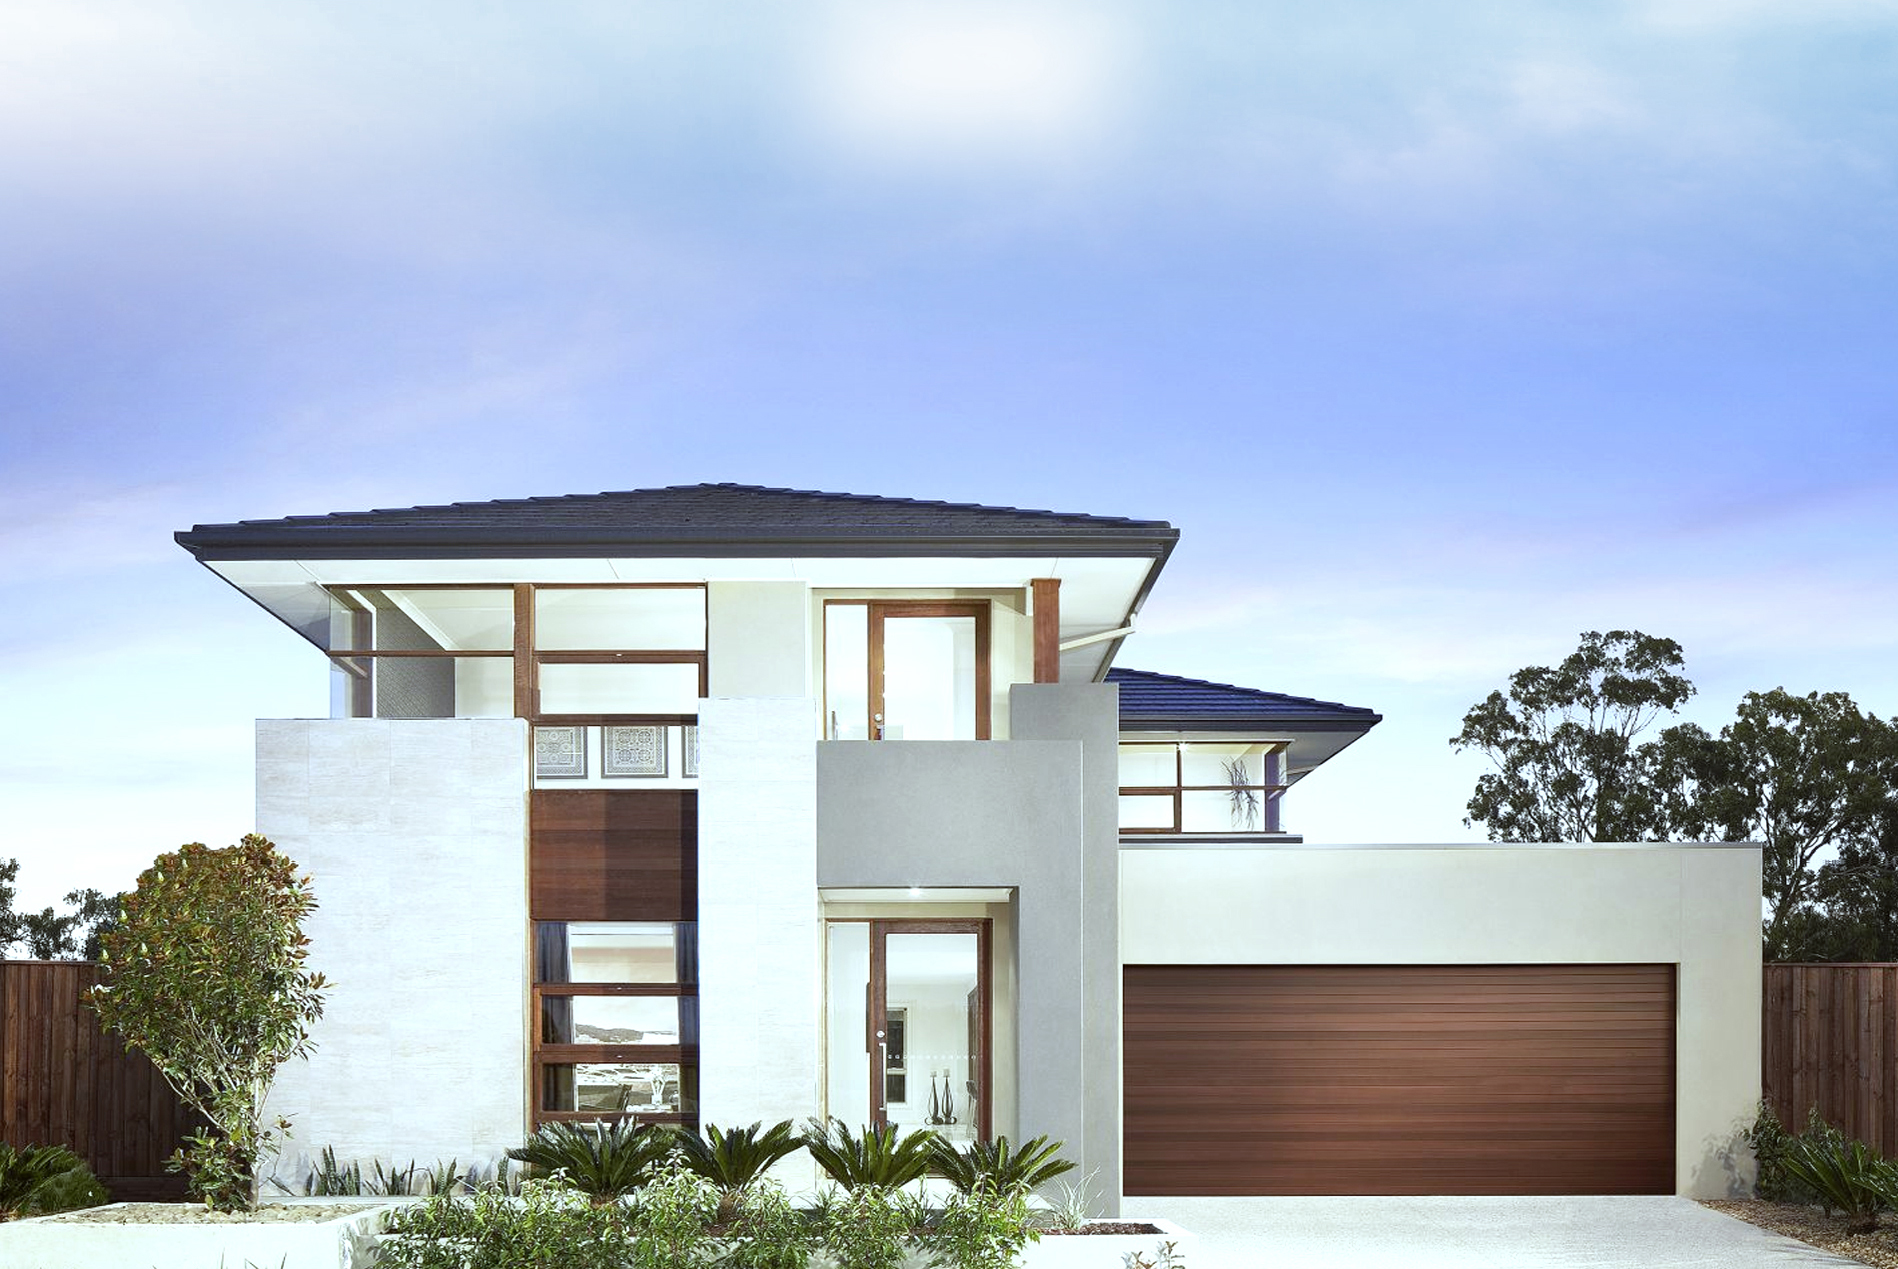 Home designs sydney list homemade ftempo for Best home designs nsw